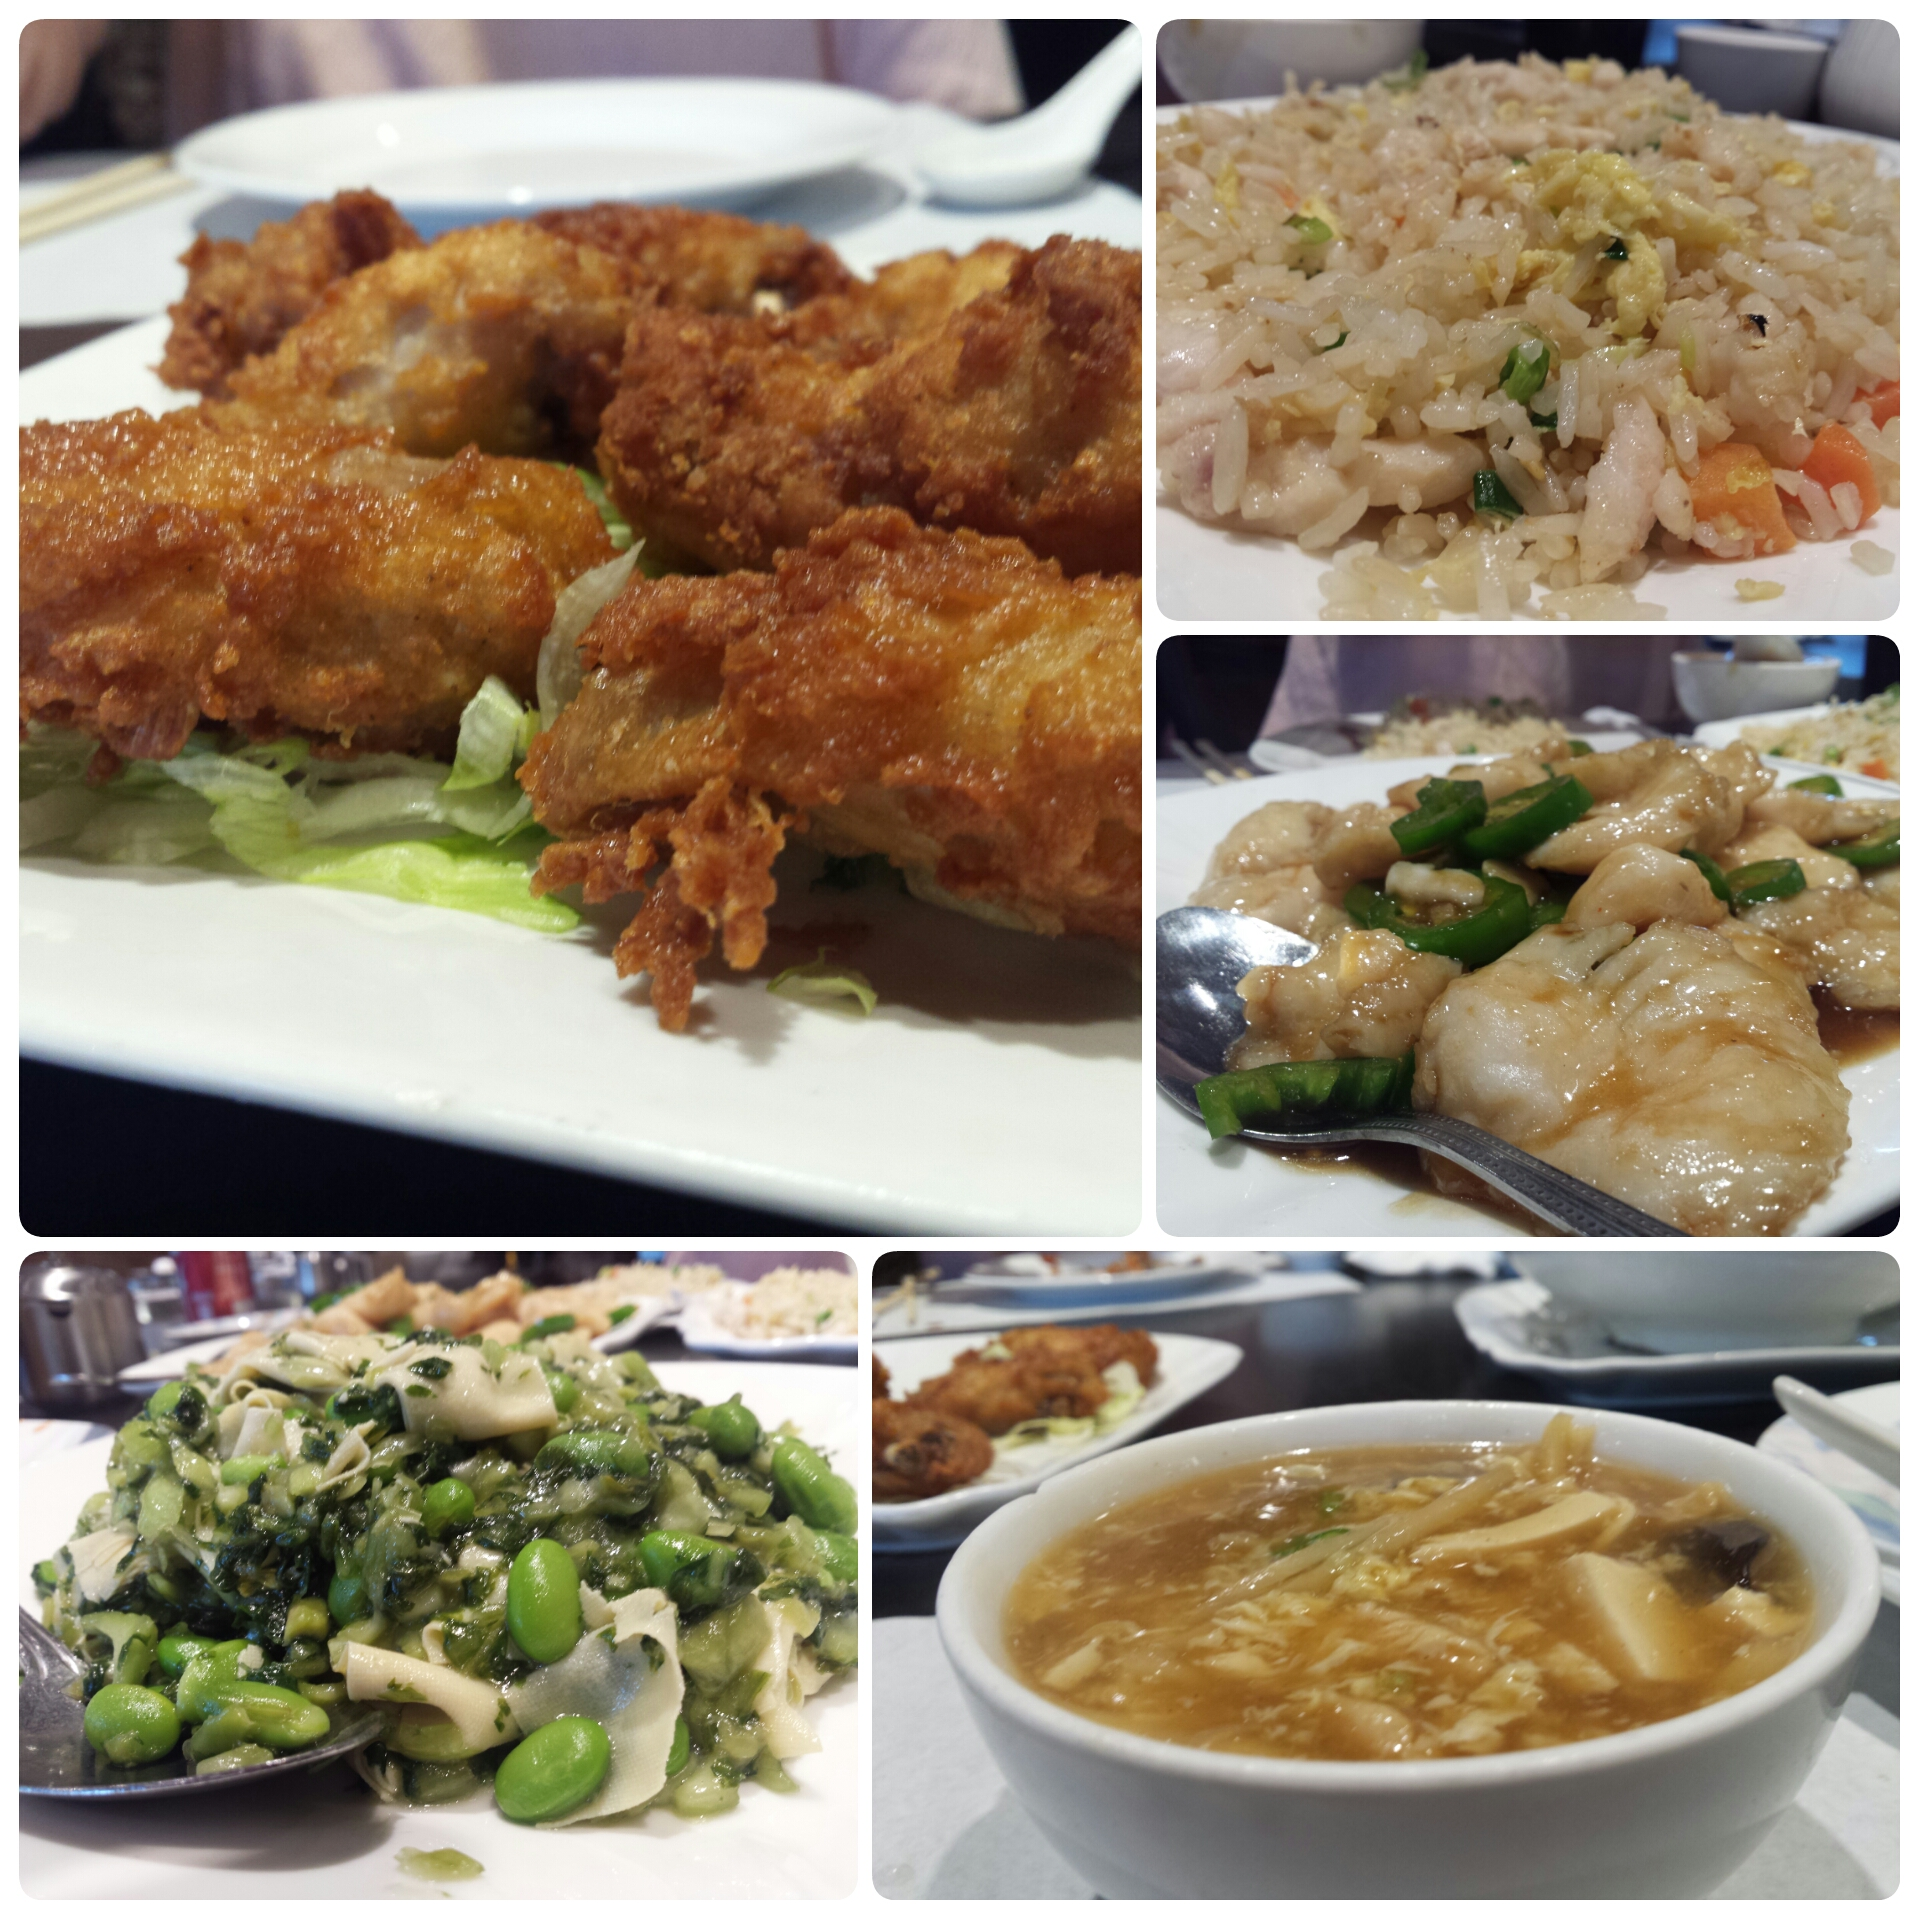 fried chicken, edamame, hot and sour soup, deep fried fish spicy garlic sauce,  chicken fried rice